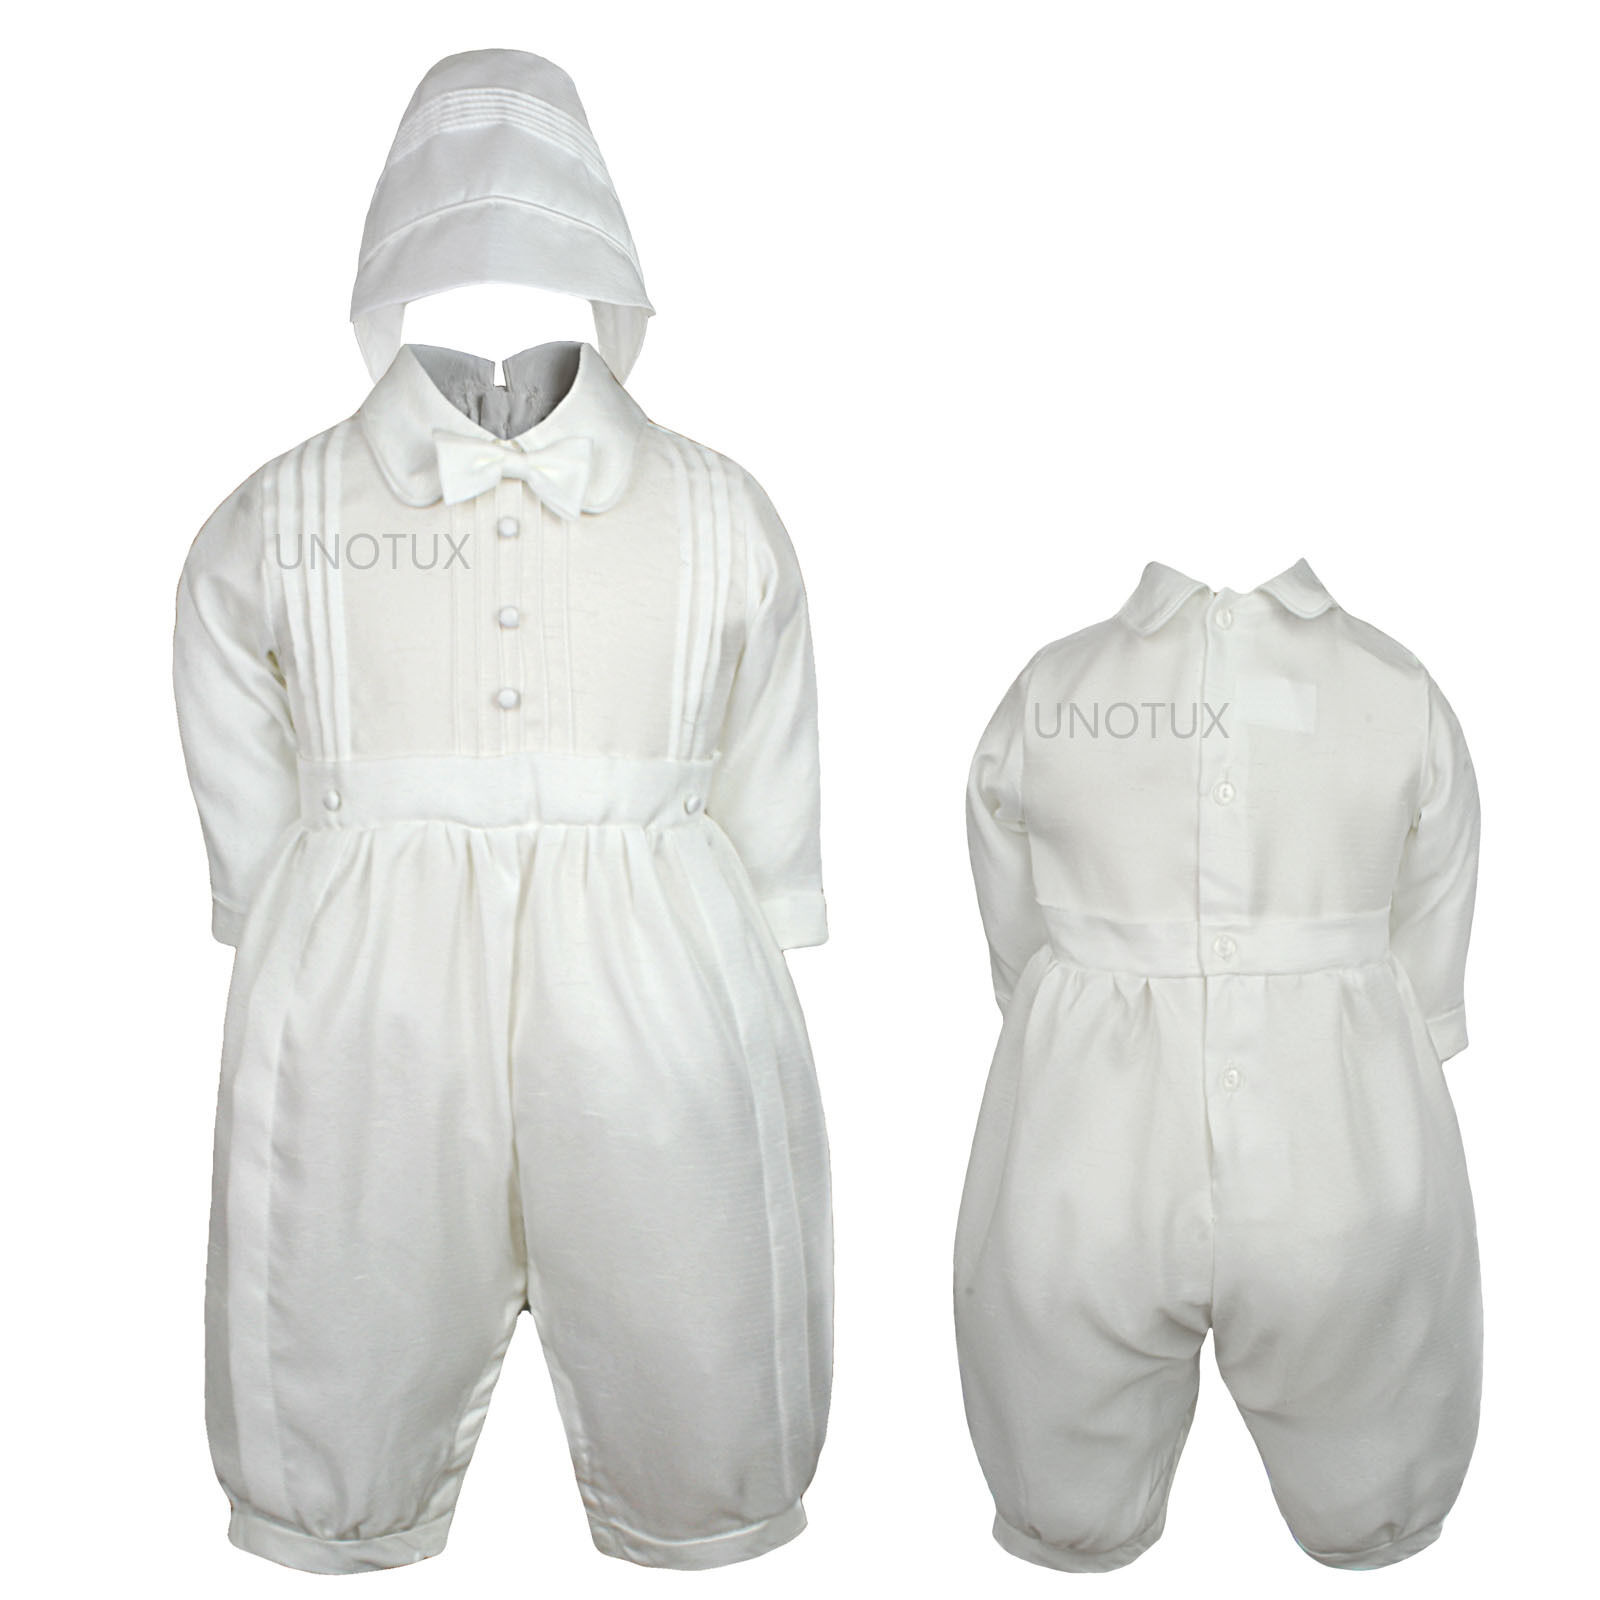 New Baby Boy /& Toddler Baptism Christening Romper Suit size:12 M to 30 M White